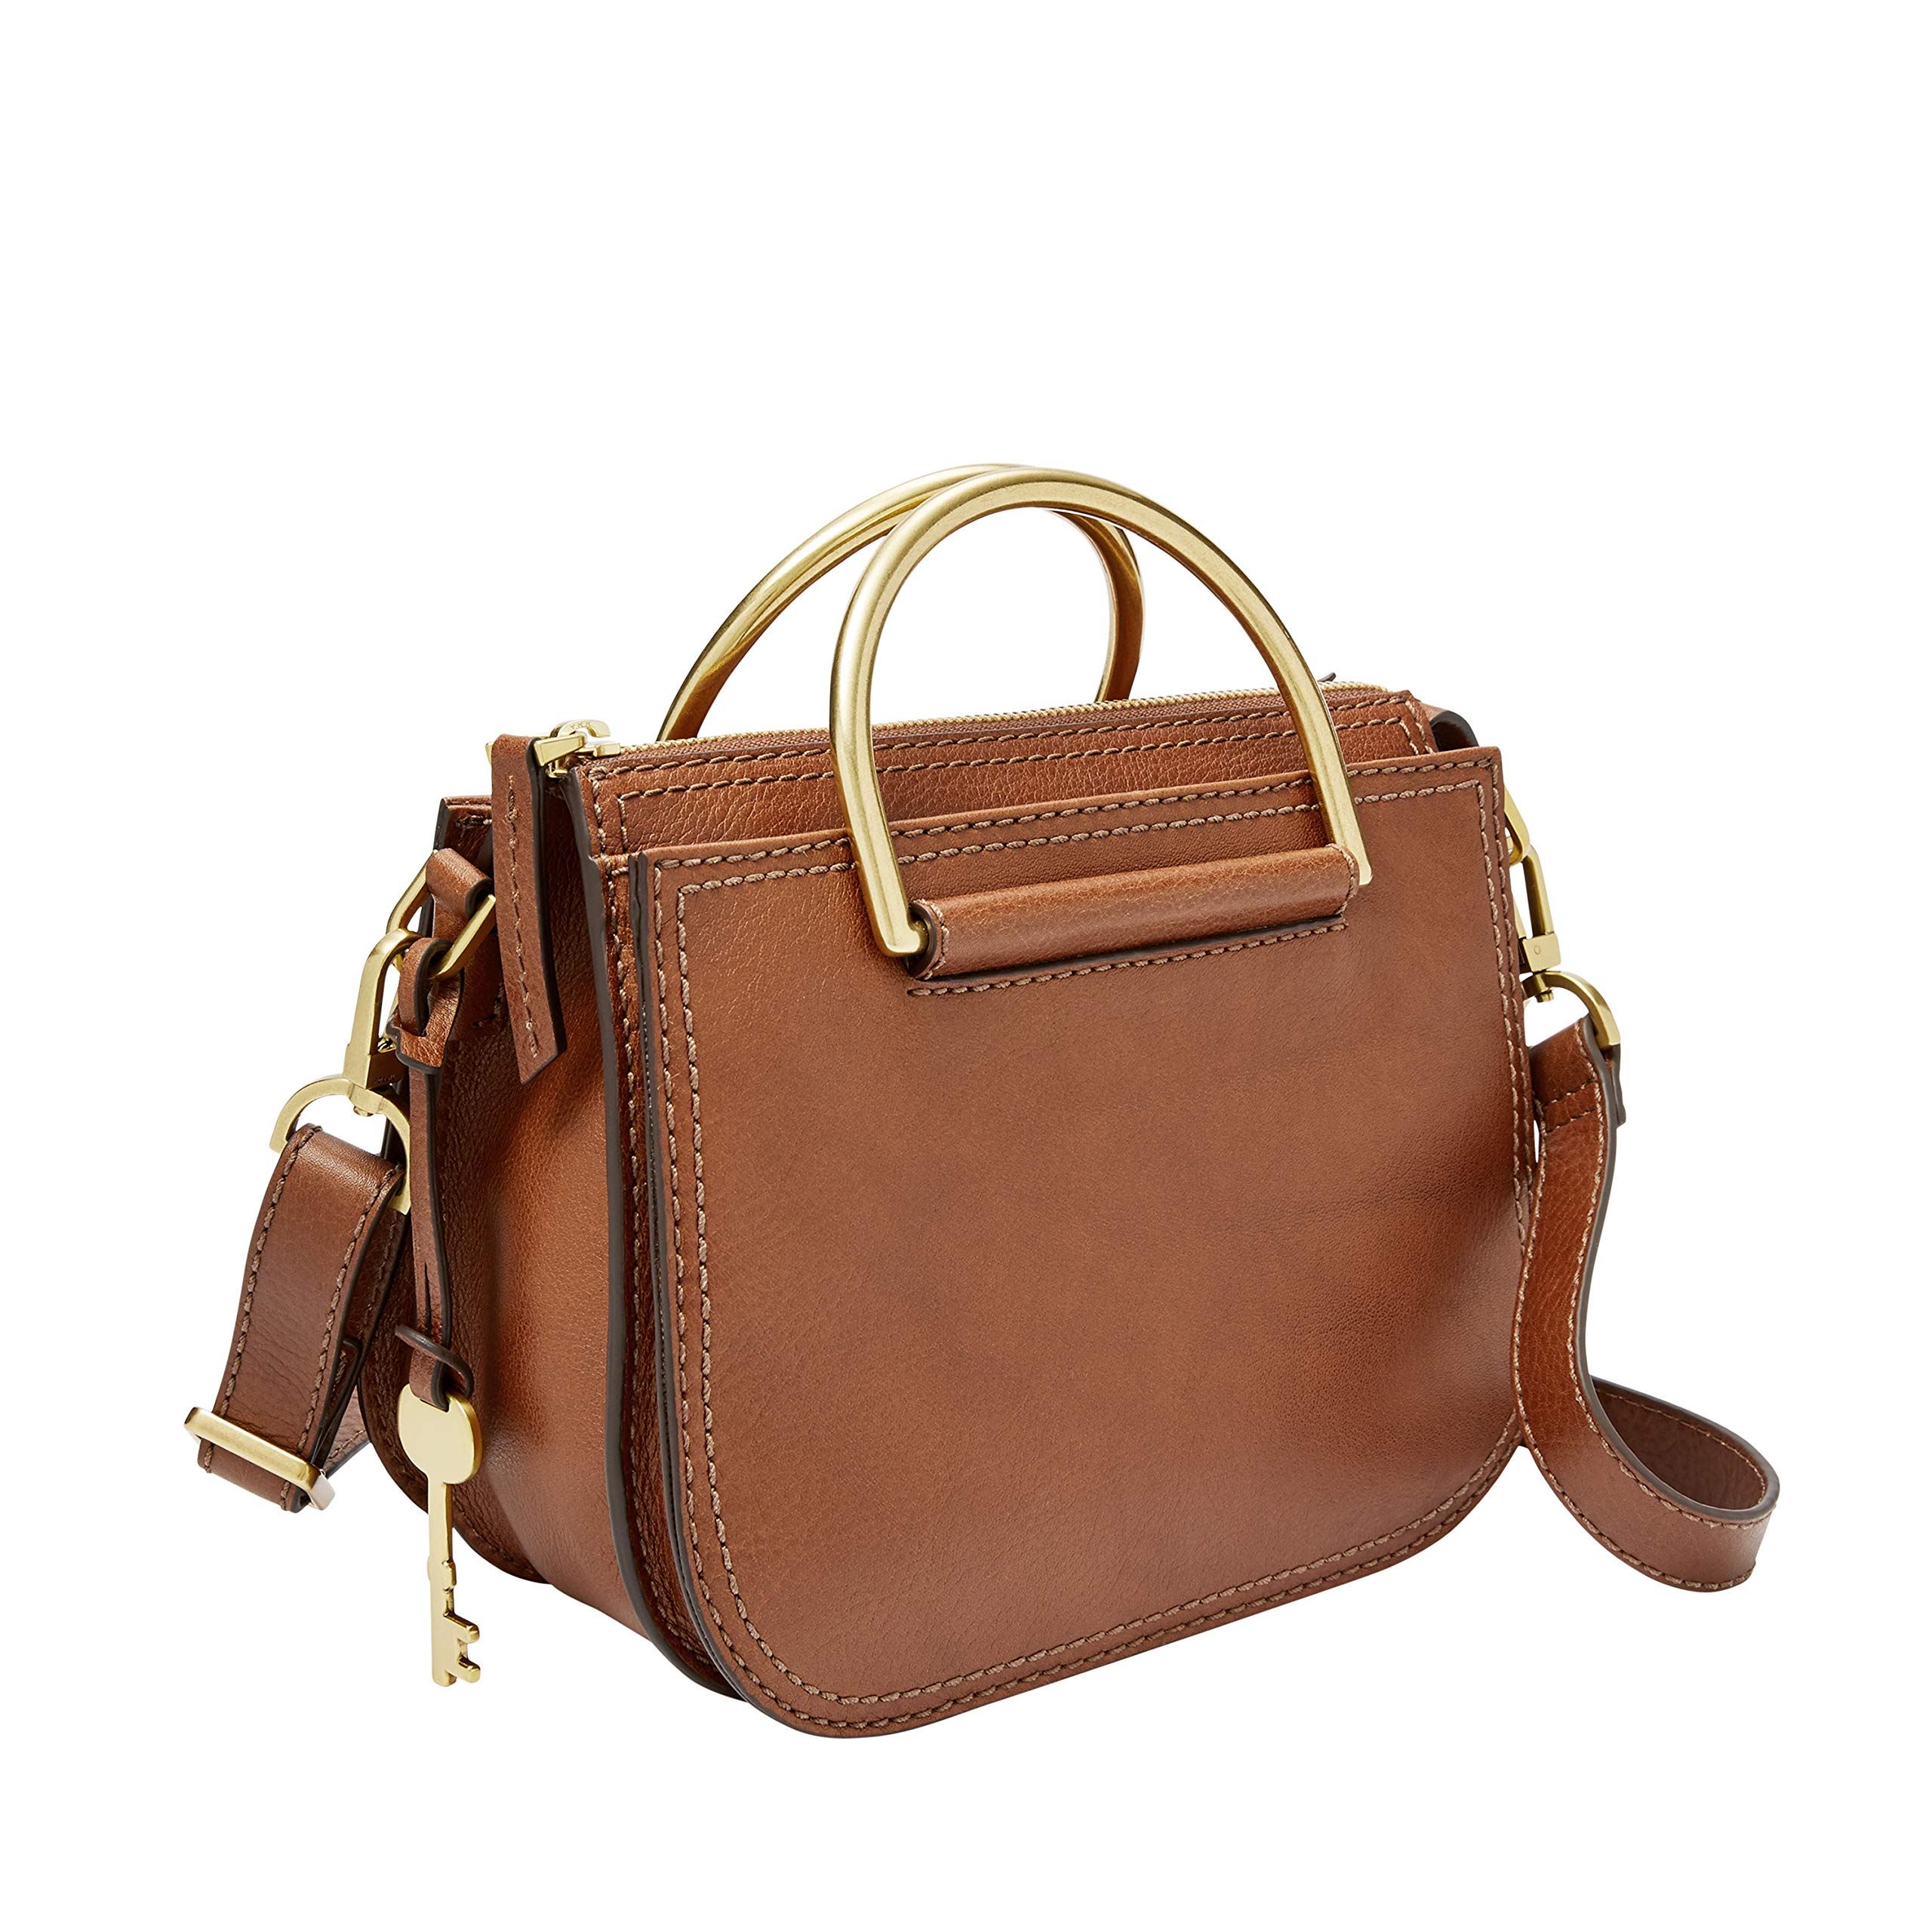 Fossil Ryder Mini Satchel Brown